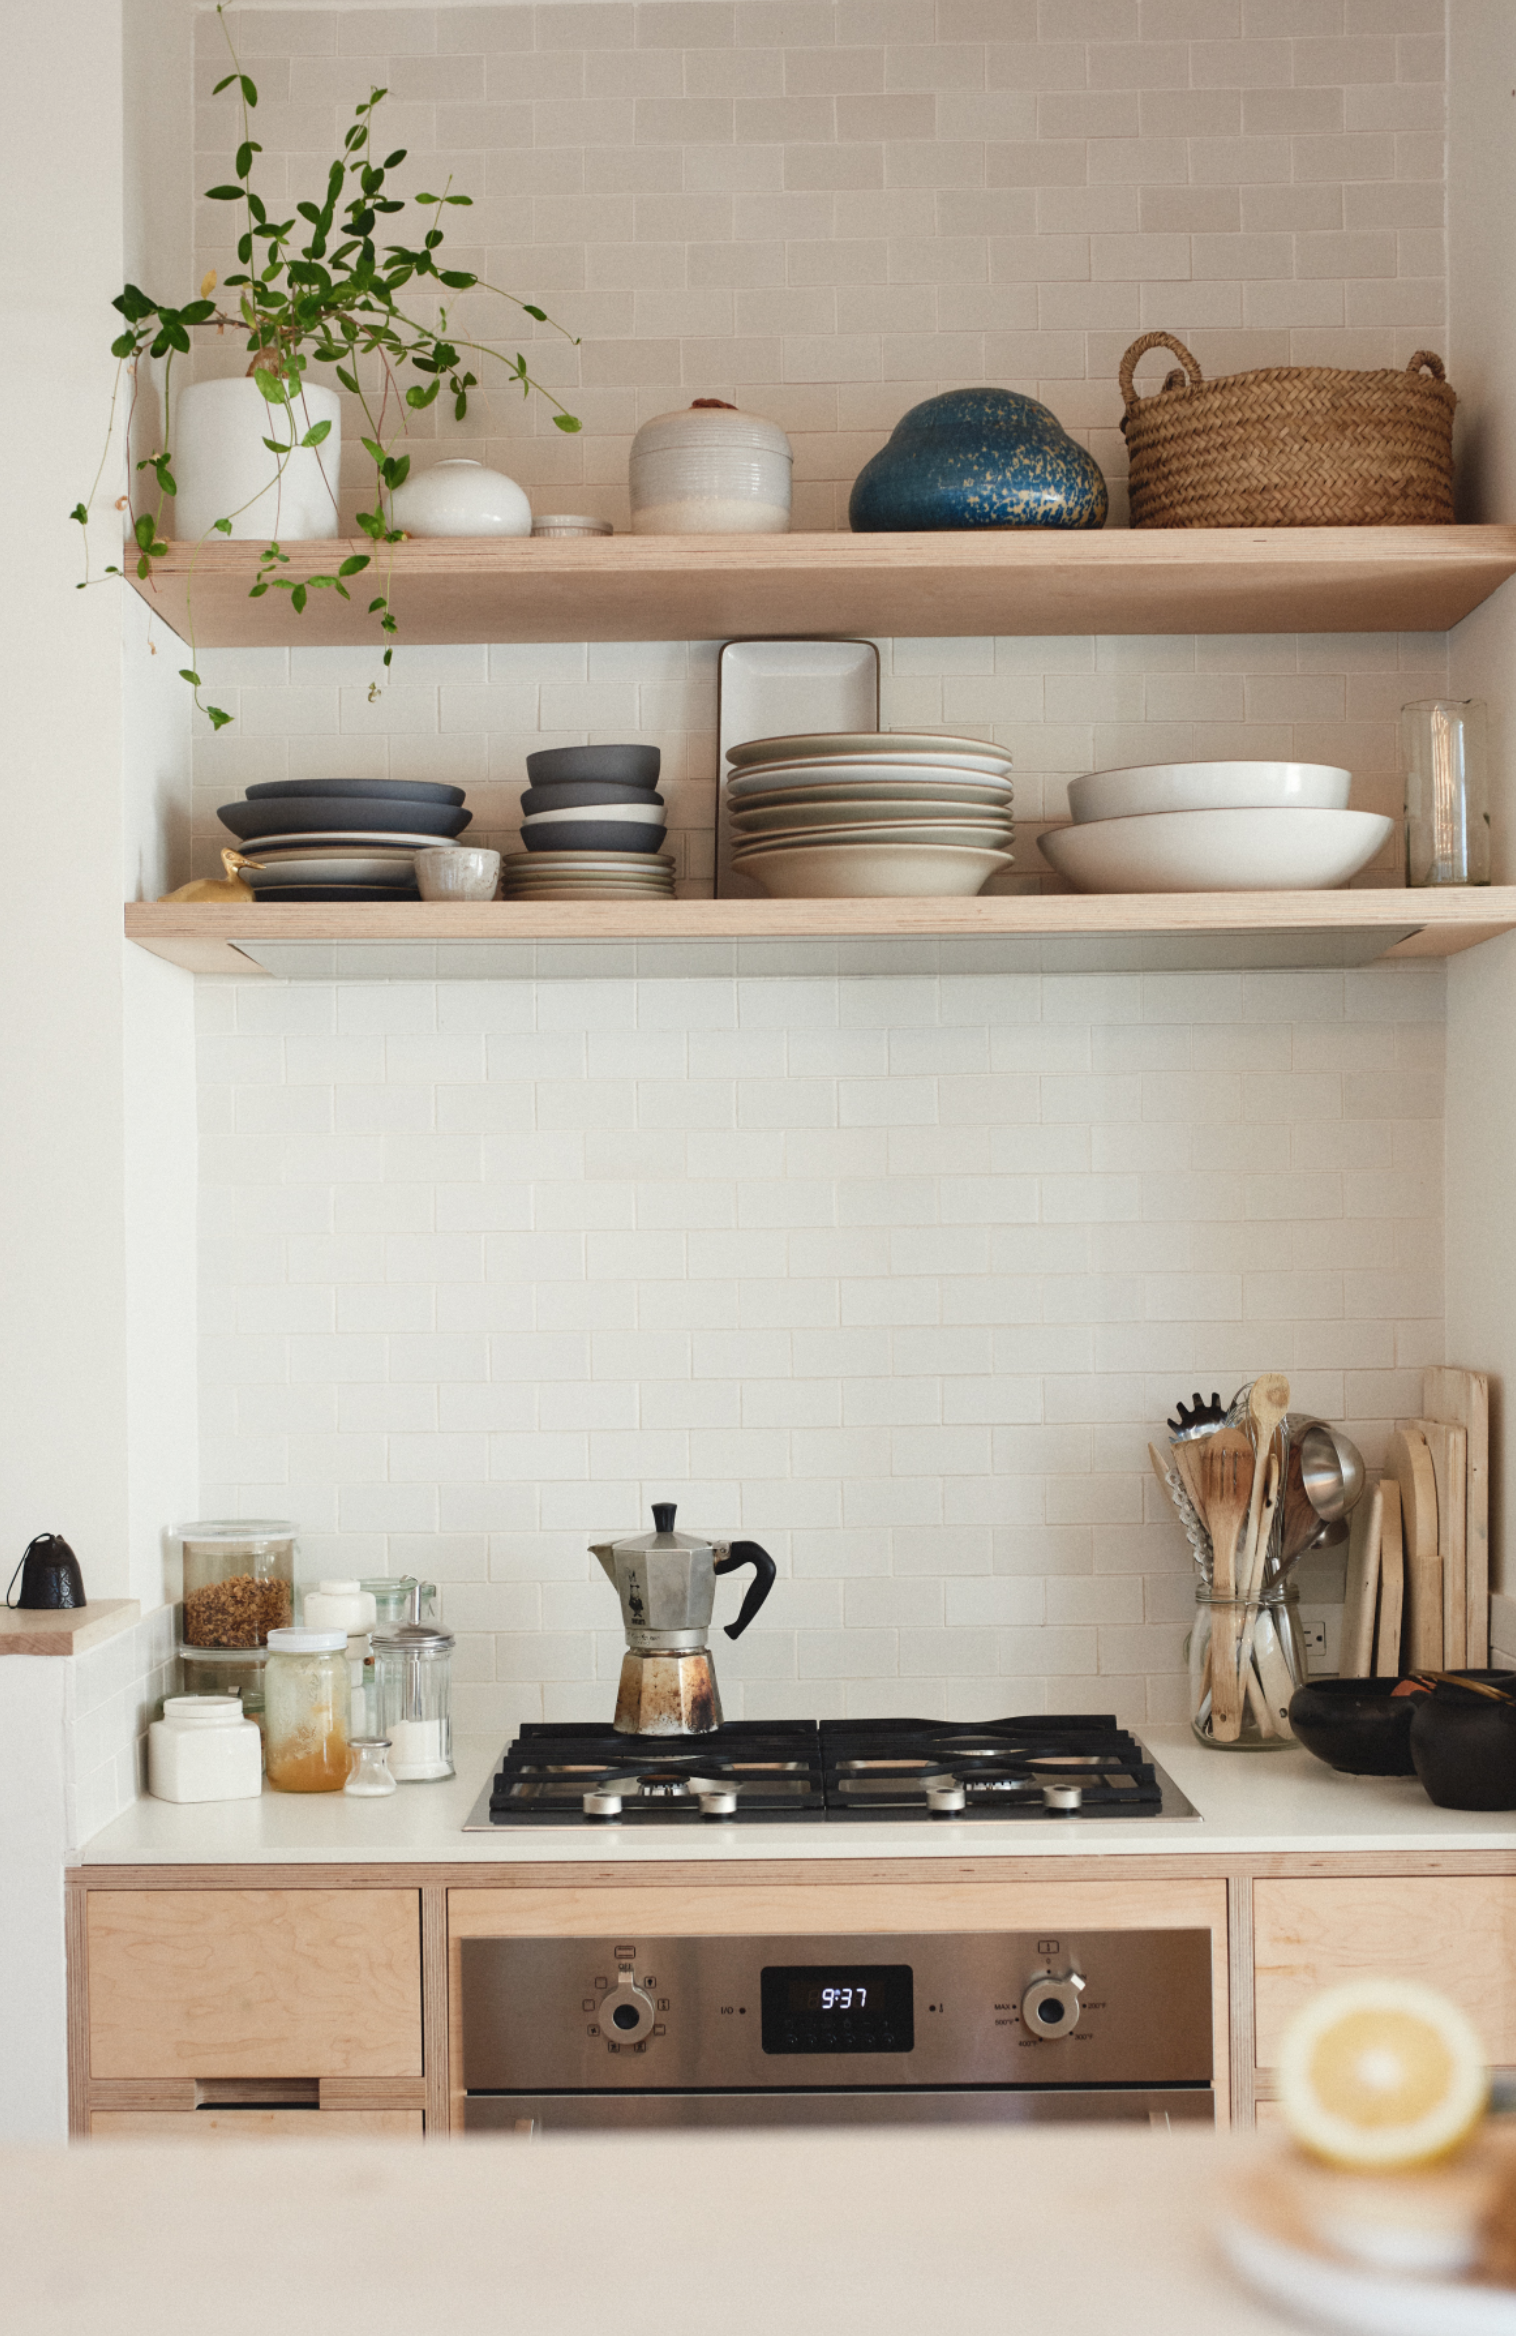 4 kitchen interior design mistakes that you need to avoid open shelving in kitchen source